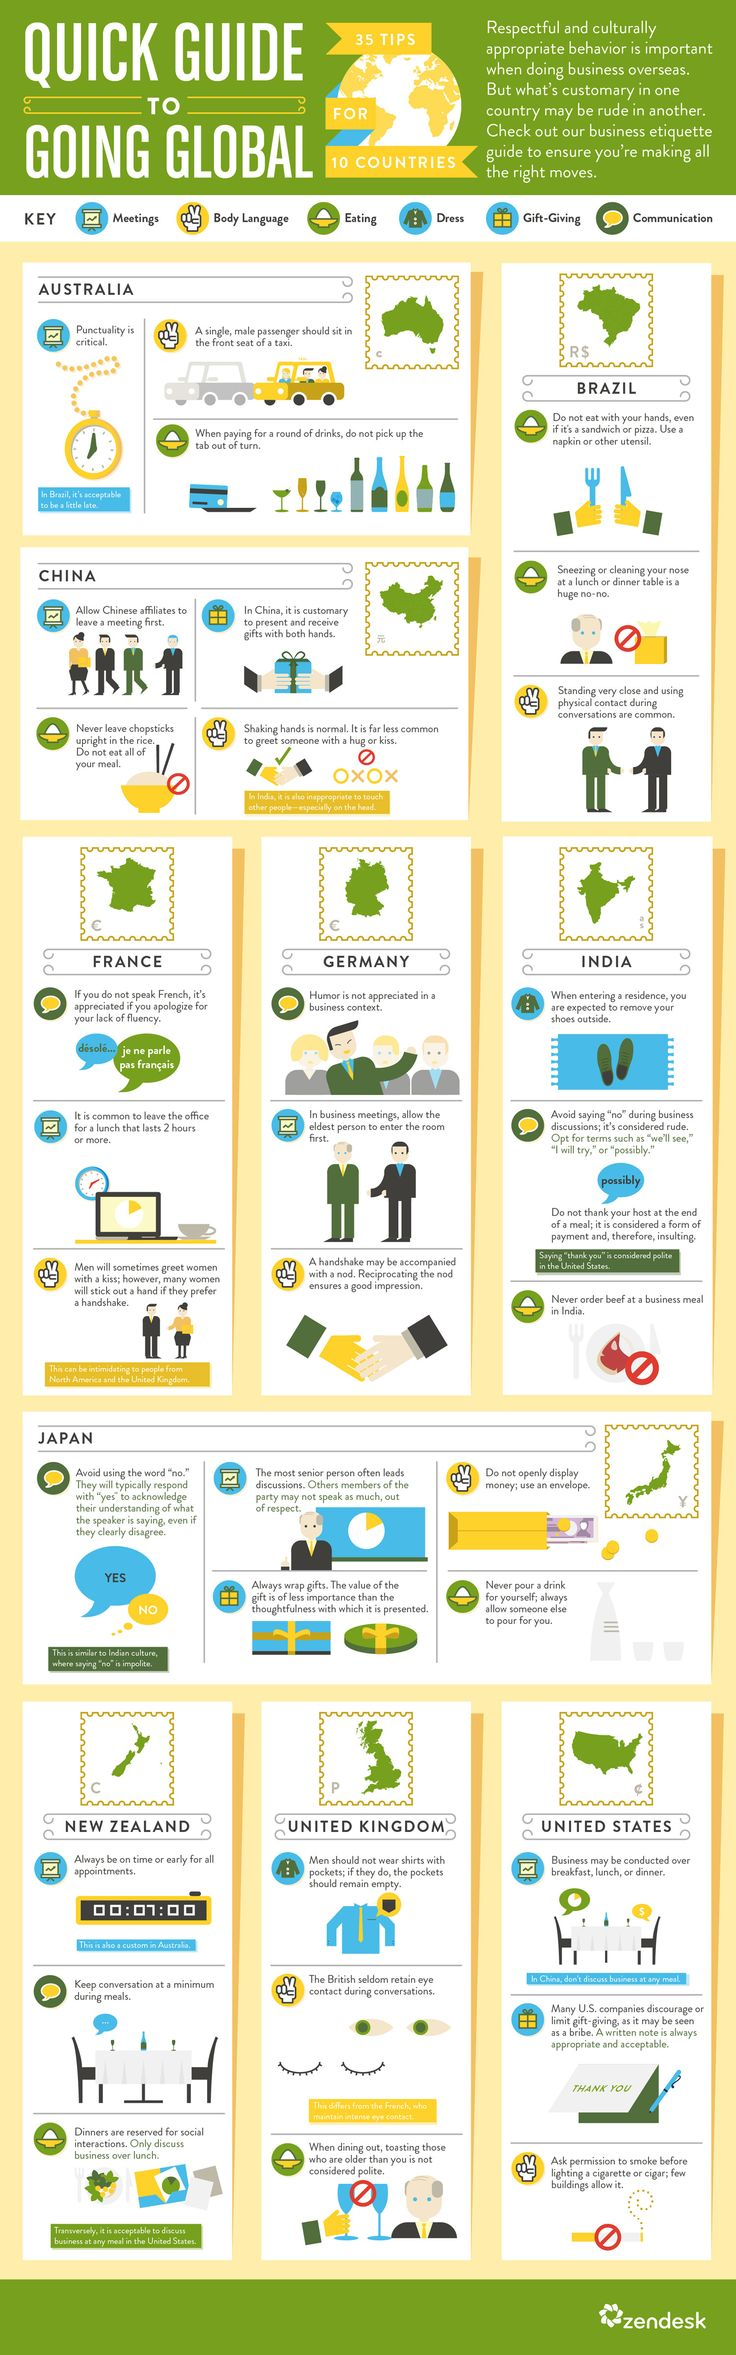 In Brazil it's appropriate to eat sandwich or pizza with hands. 35 #tips on how not to offend your international business partner